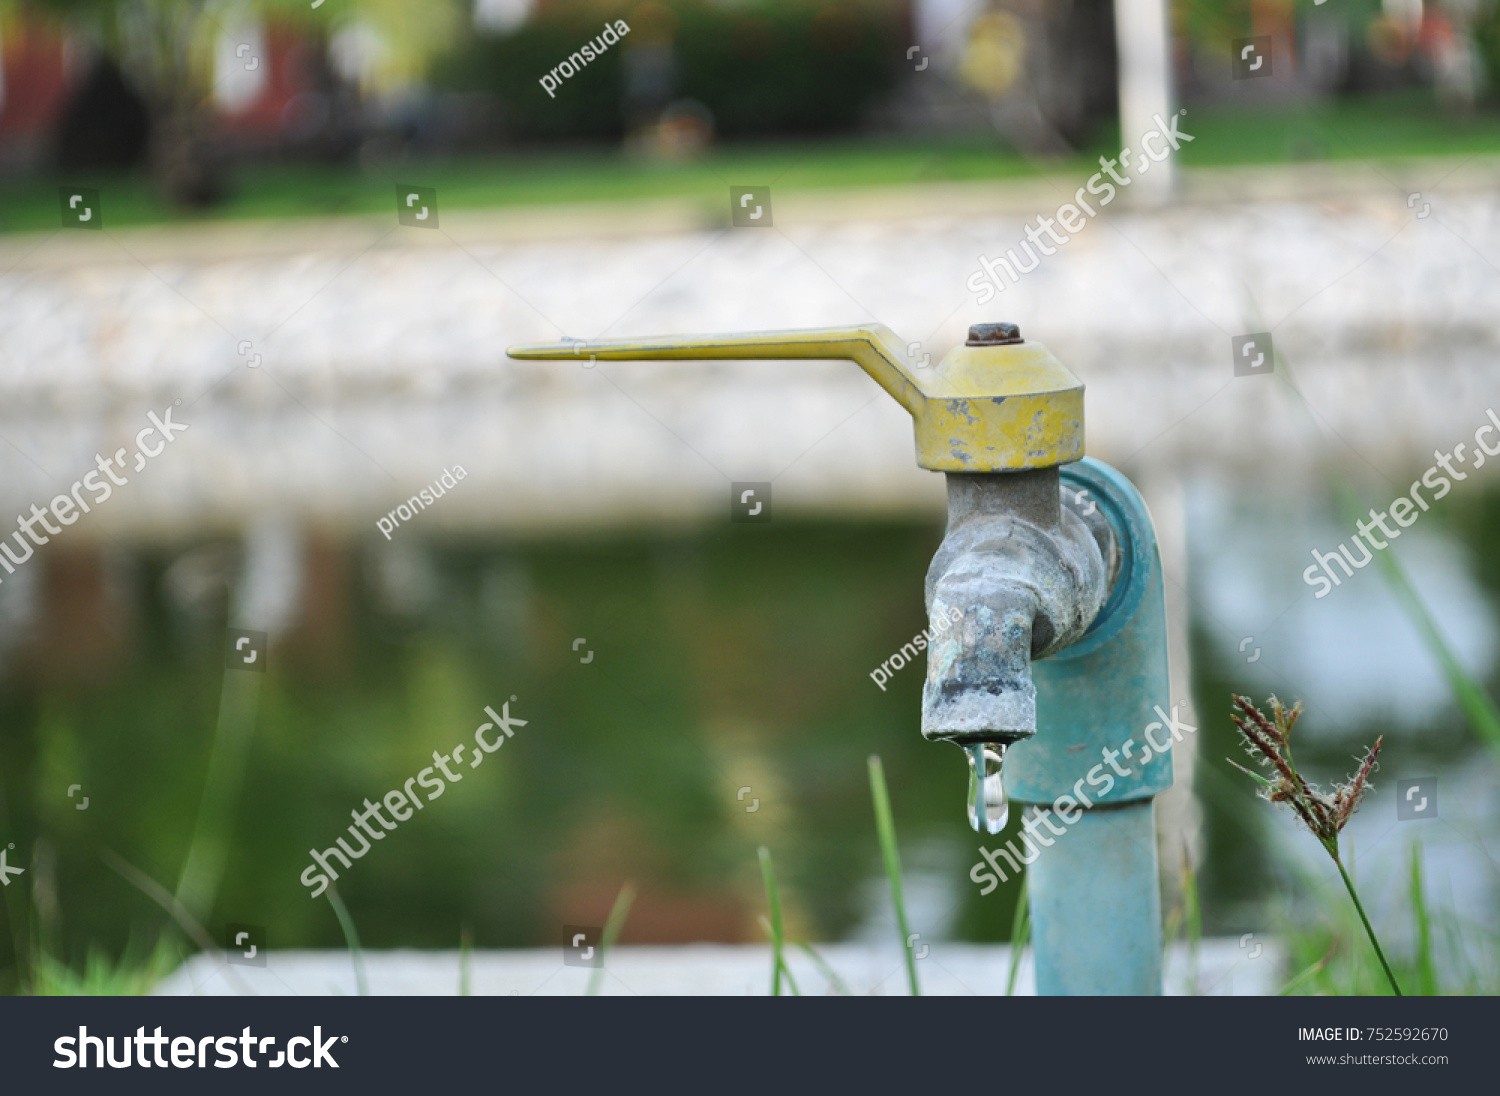 Colorful Garden Faucet Picture Collection - Beautiful Garden ...